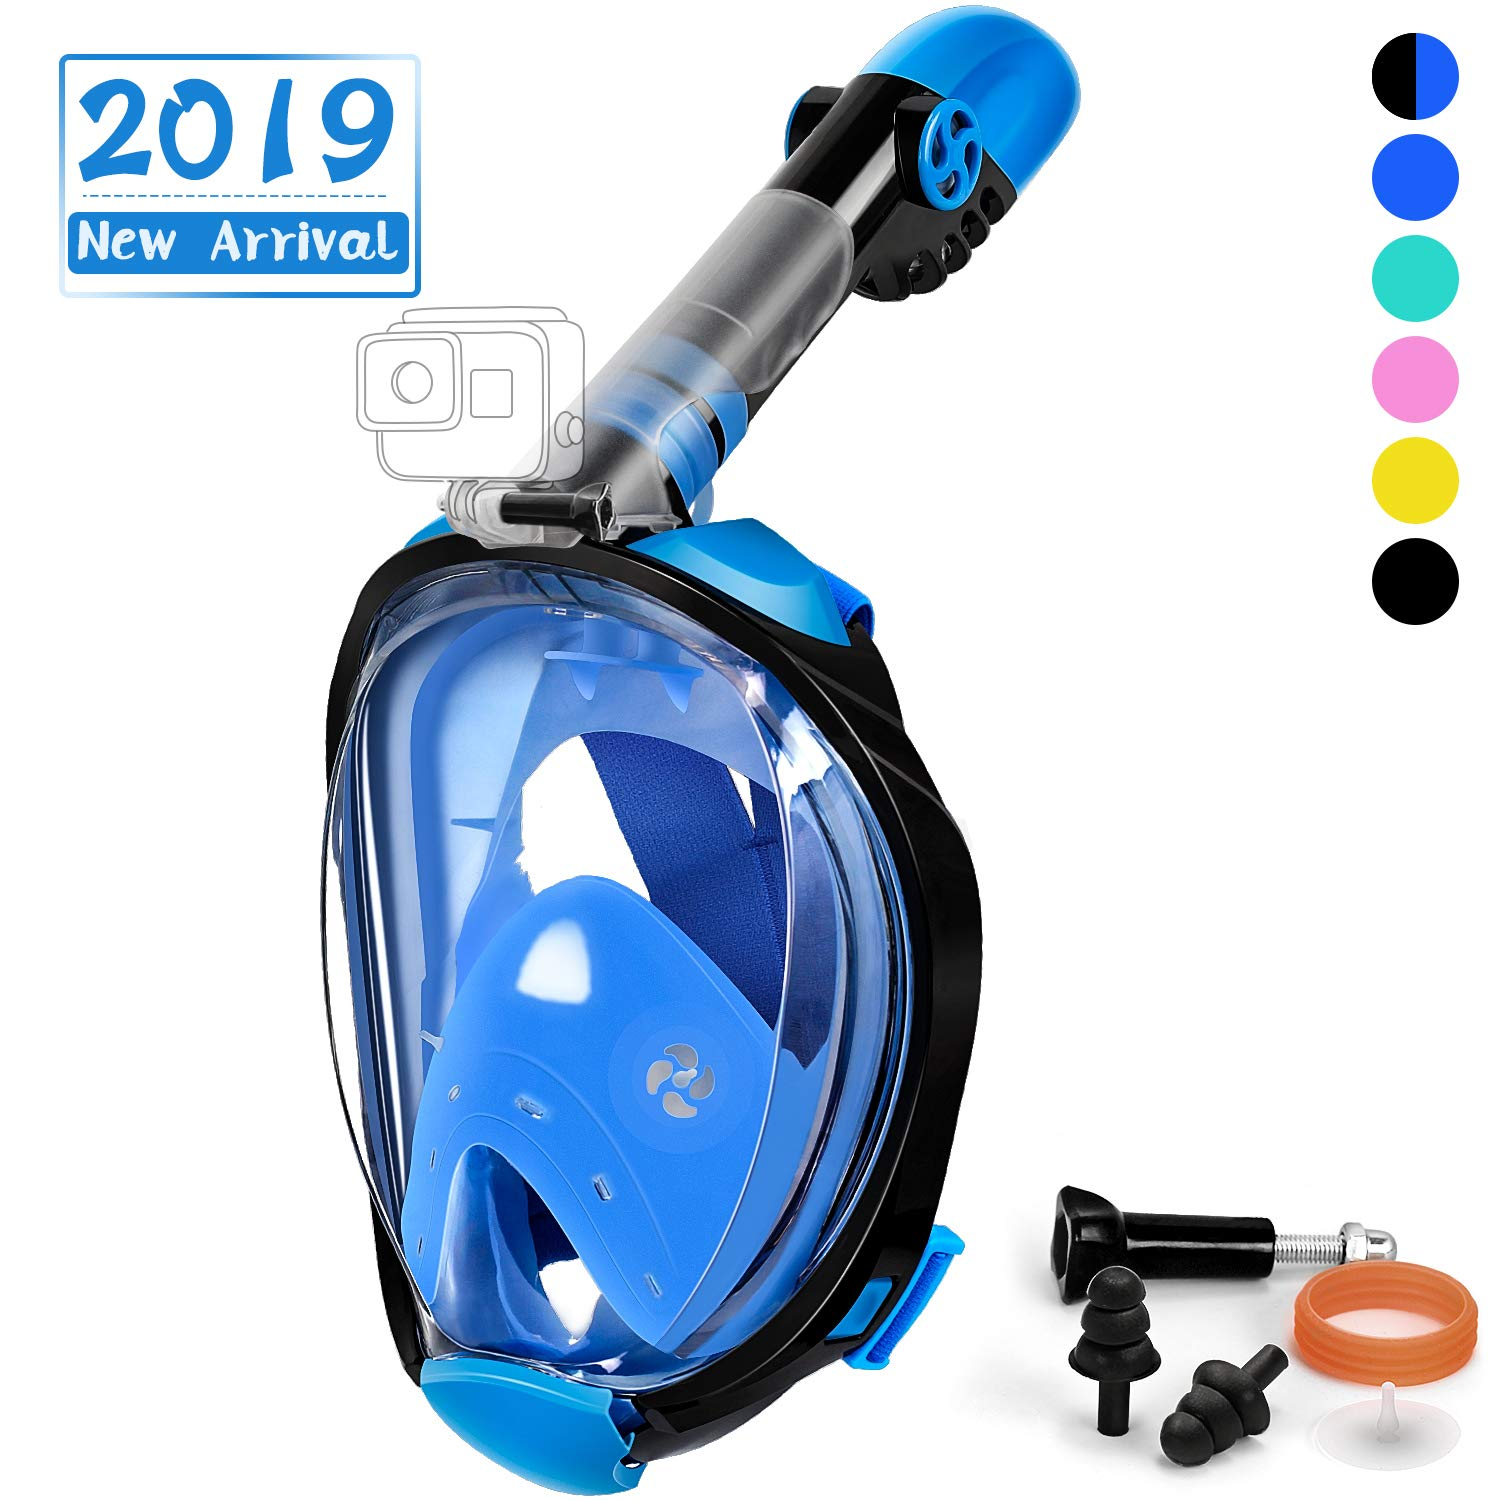 OUSPT Full Face Snorkel Mask, Snorkeling Mask with Detachable Camera Mount, Seaview 180° Upgraded Dive Mask with Newest Breathing System, Dry Top Set Anti-Fog Anti-Leak for Adult (Blue, S/M)